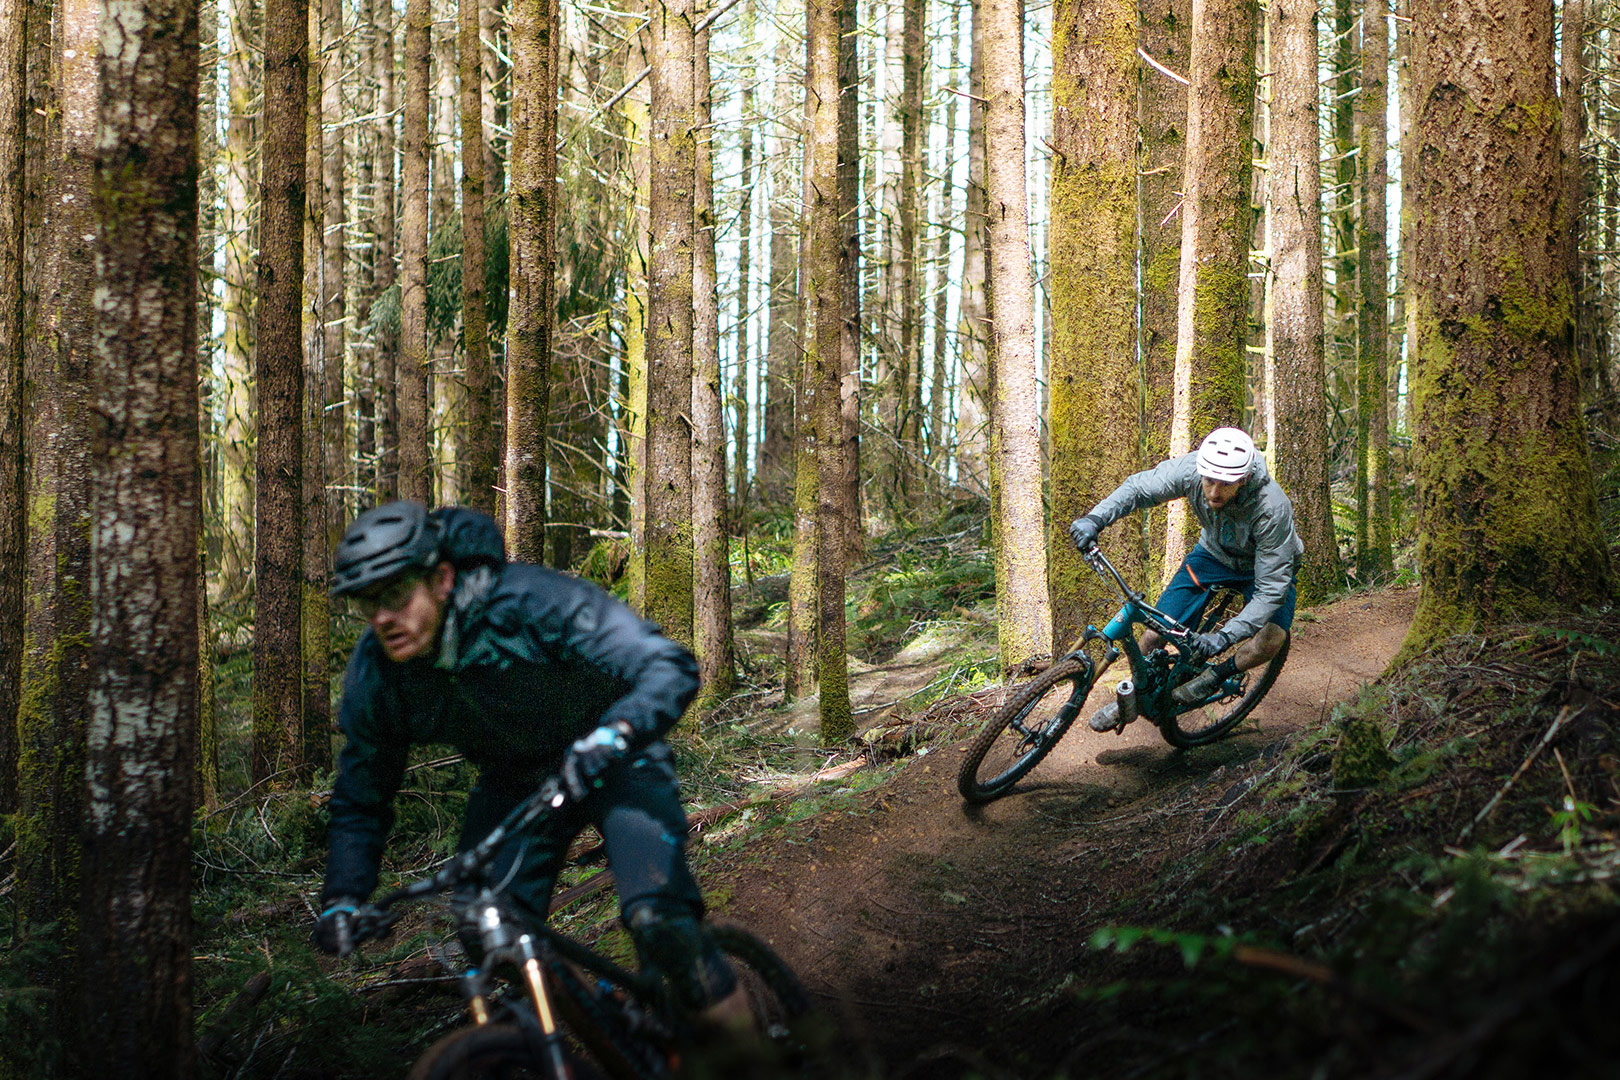 From Sawmills to Singletrack